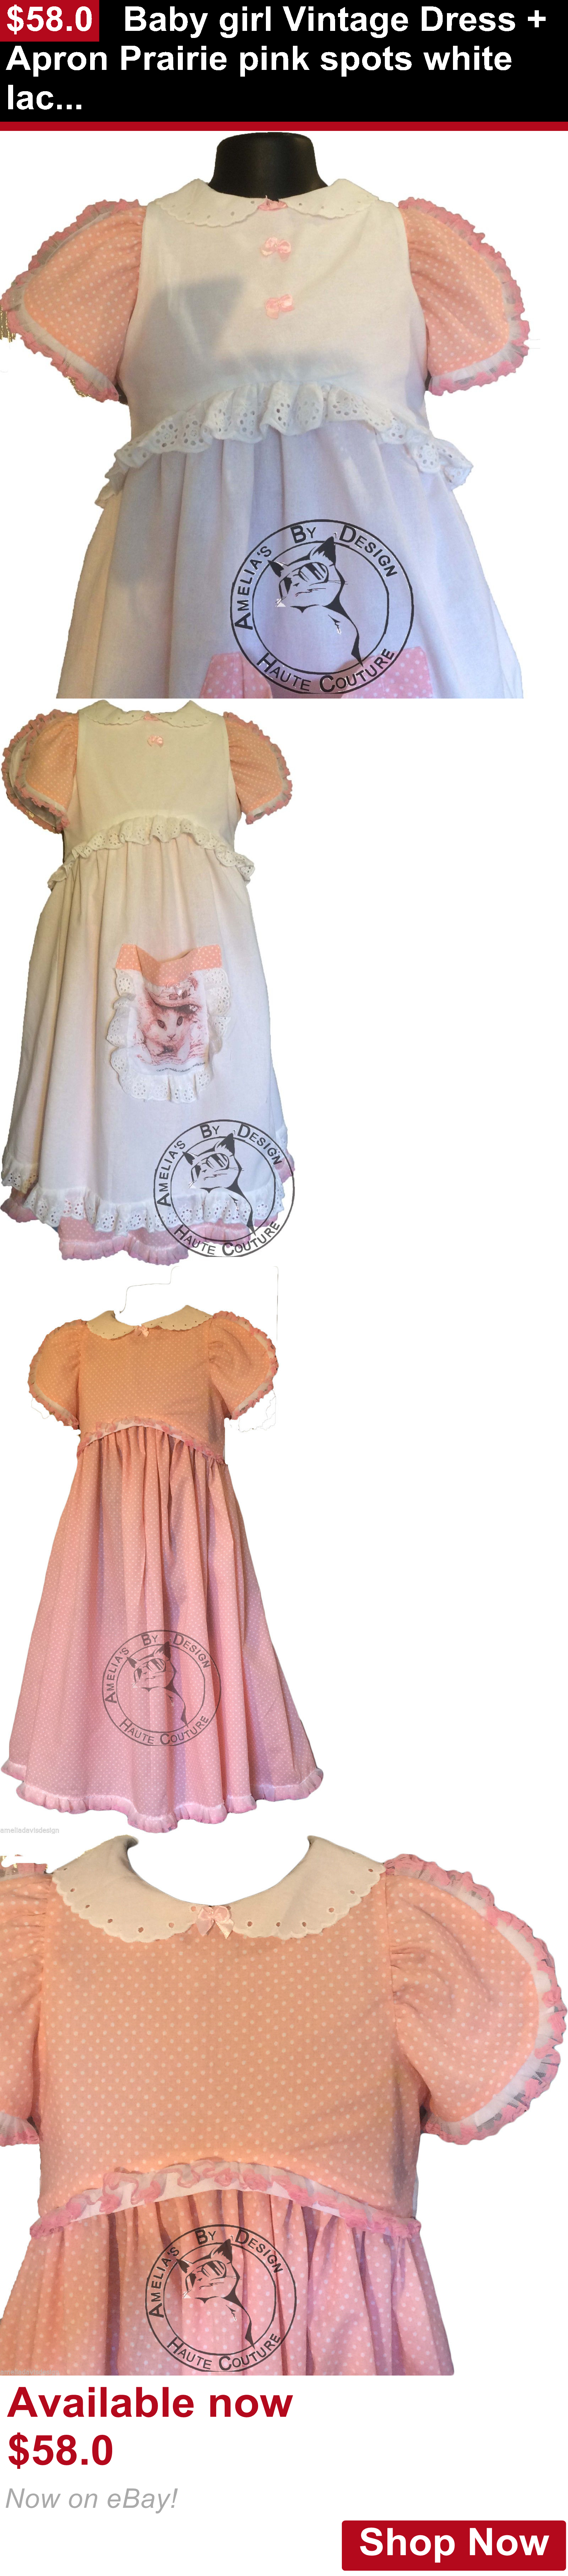 White lace apron ebay - Children Vintage Clothing Baby Girl Vintage Dress Apron Prairie Pink Spots White Lace Eyelet Lined Aus Buy It Now Only 58 0 Pinterest